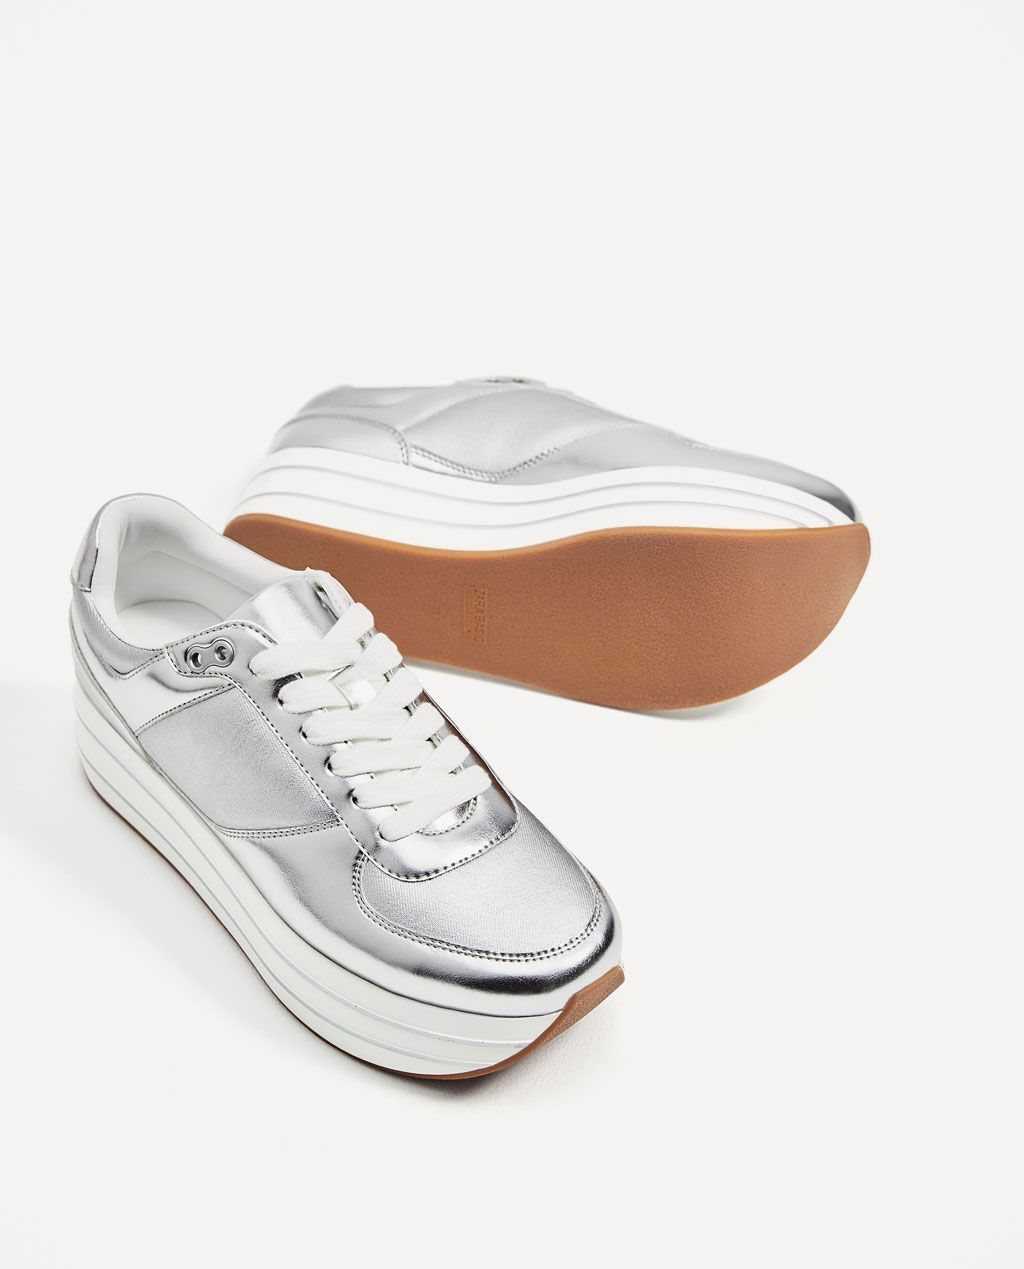 92212ce3ad Image 1 of SILVER PLATFORM SNEAKERS from Zara | ace-1 | Tennis shoes ...